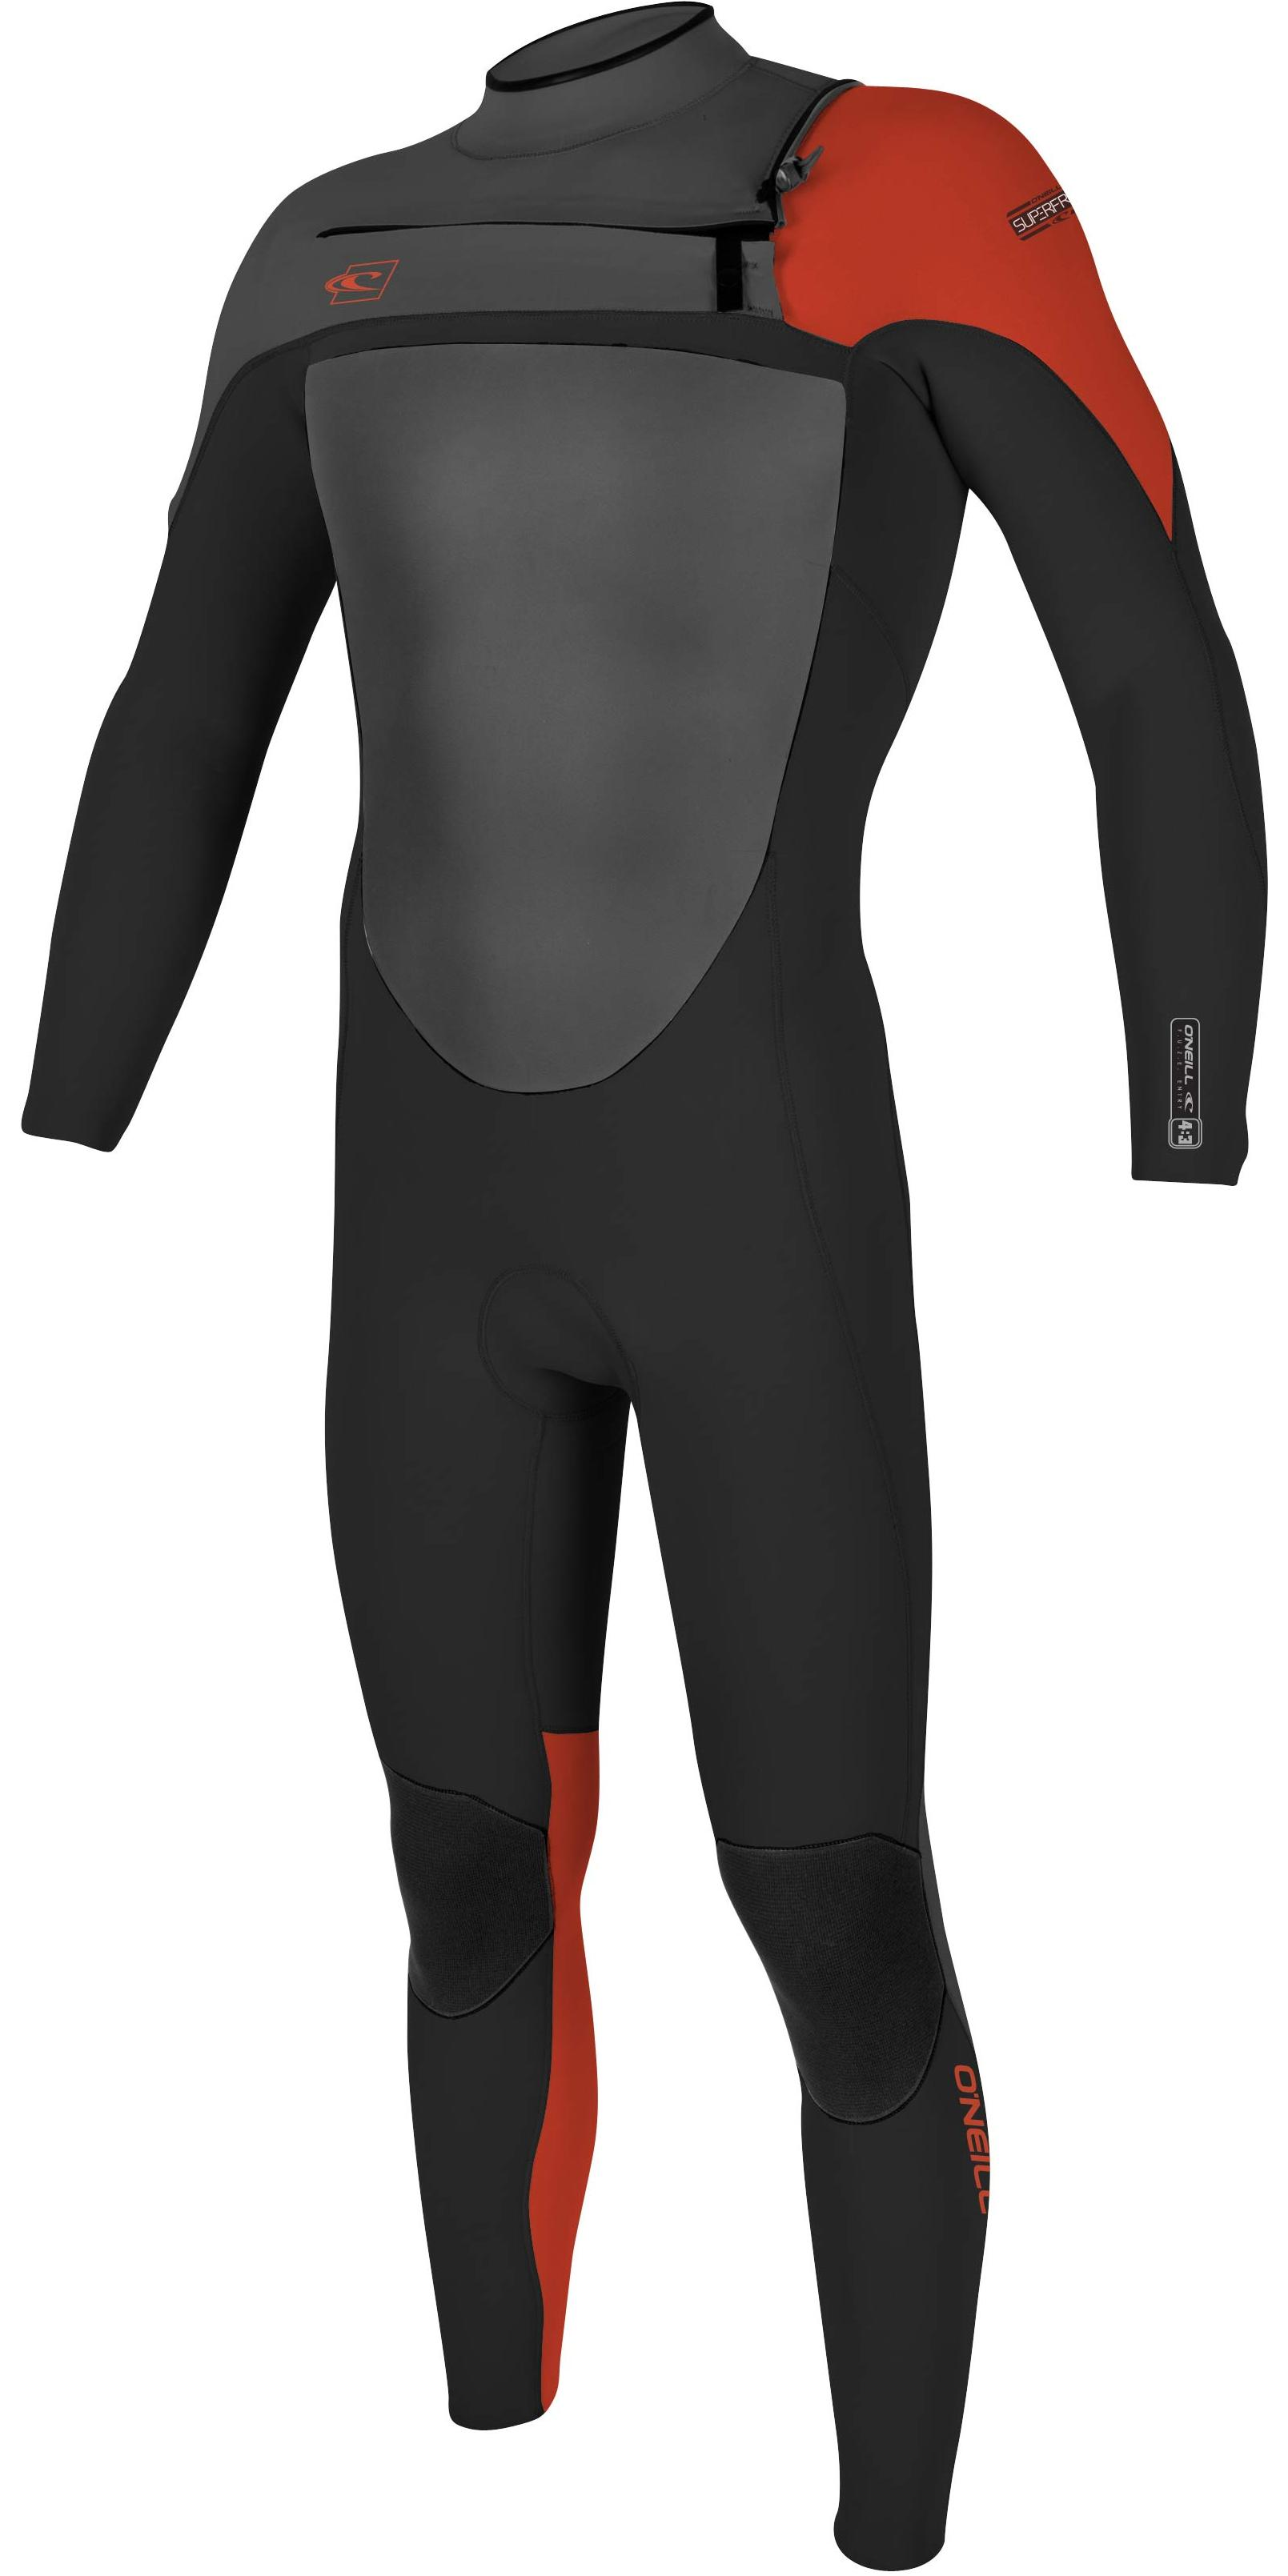 2017 O'Neill SuperFreak 4/3mm Chest Zip GBS Wetsuit BLACK / GRAPHITE /RED 4769